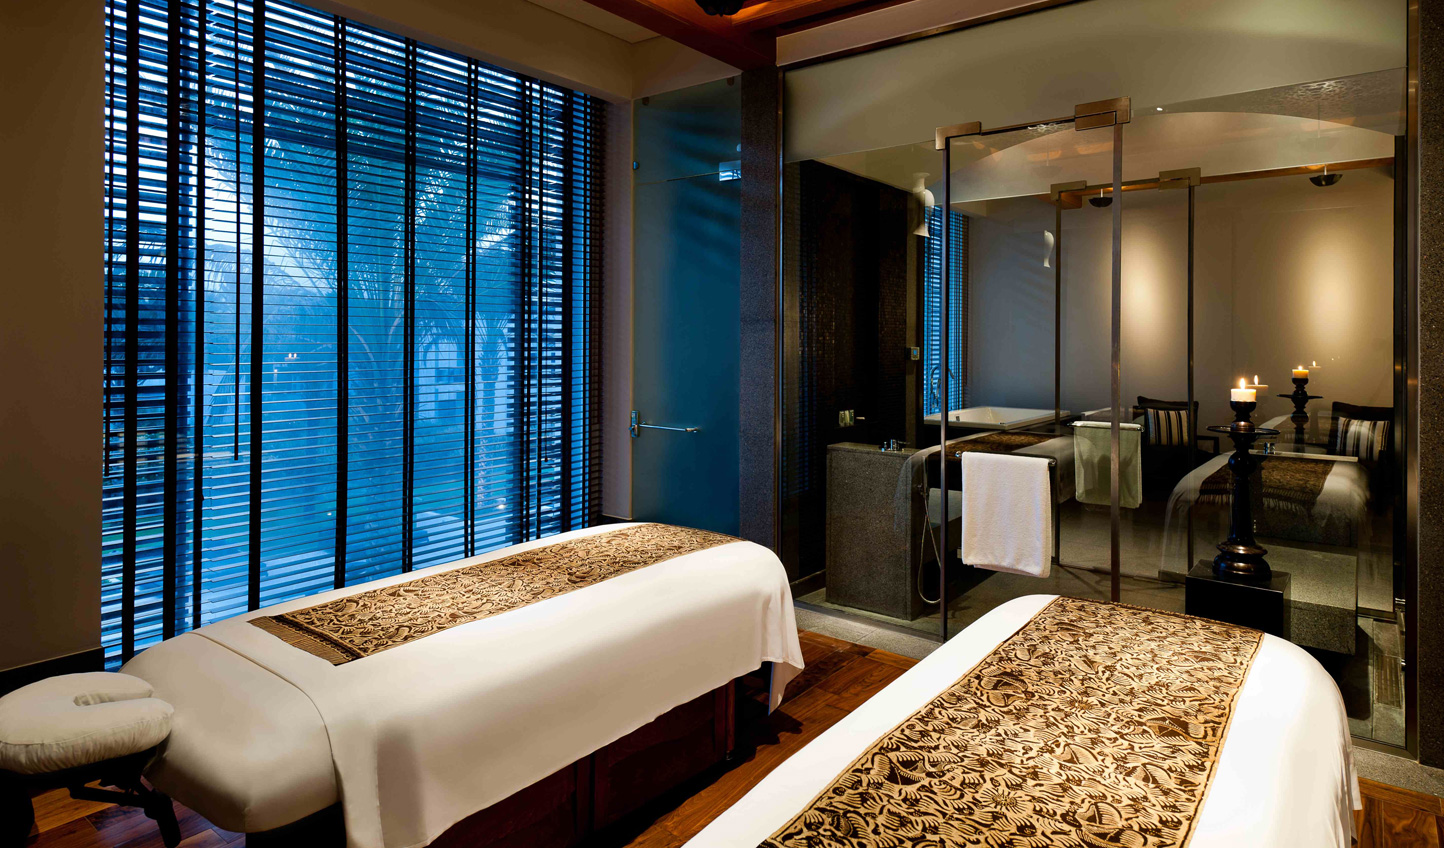 Total relaxation awaits in the spa